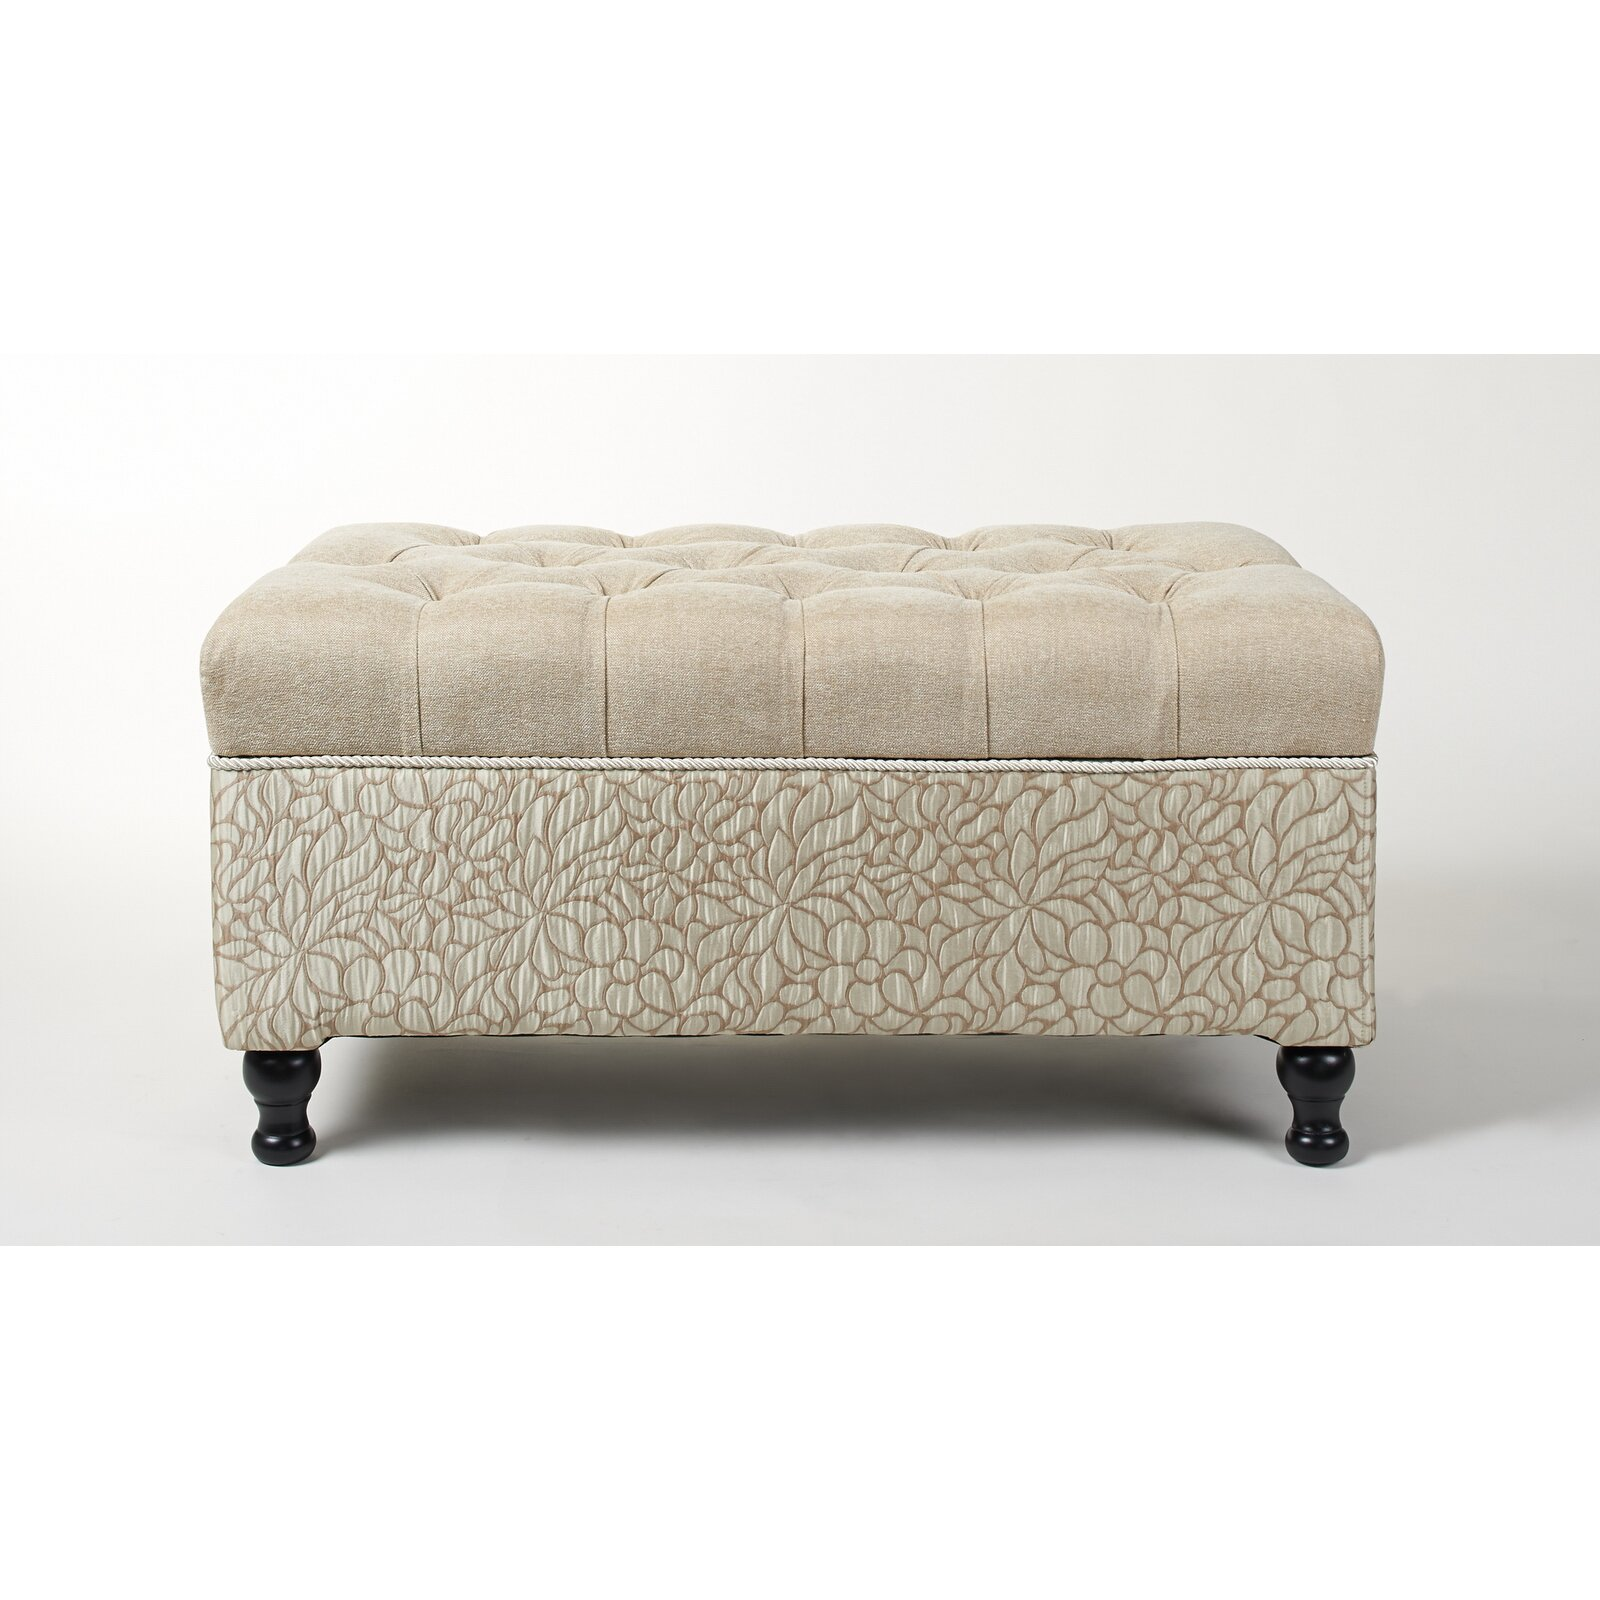 Jennifer Taylor Naomi Upholstered Storage Bedroom Bench Reviews Wayfair